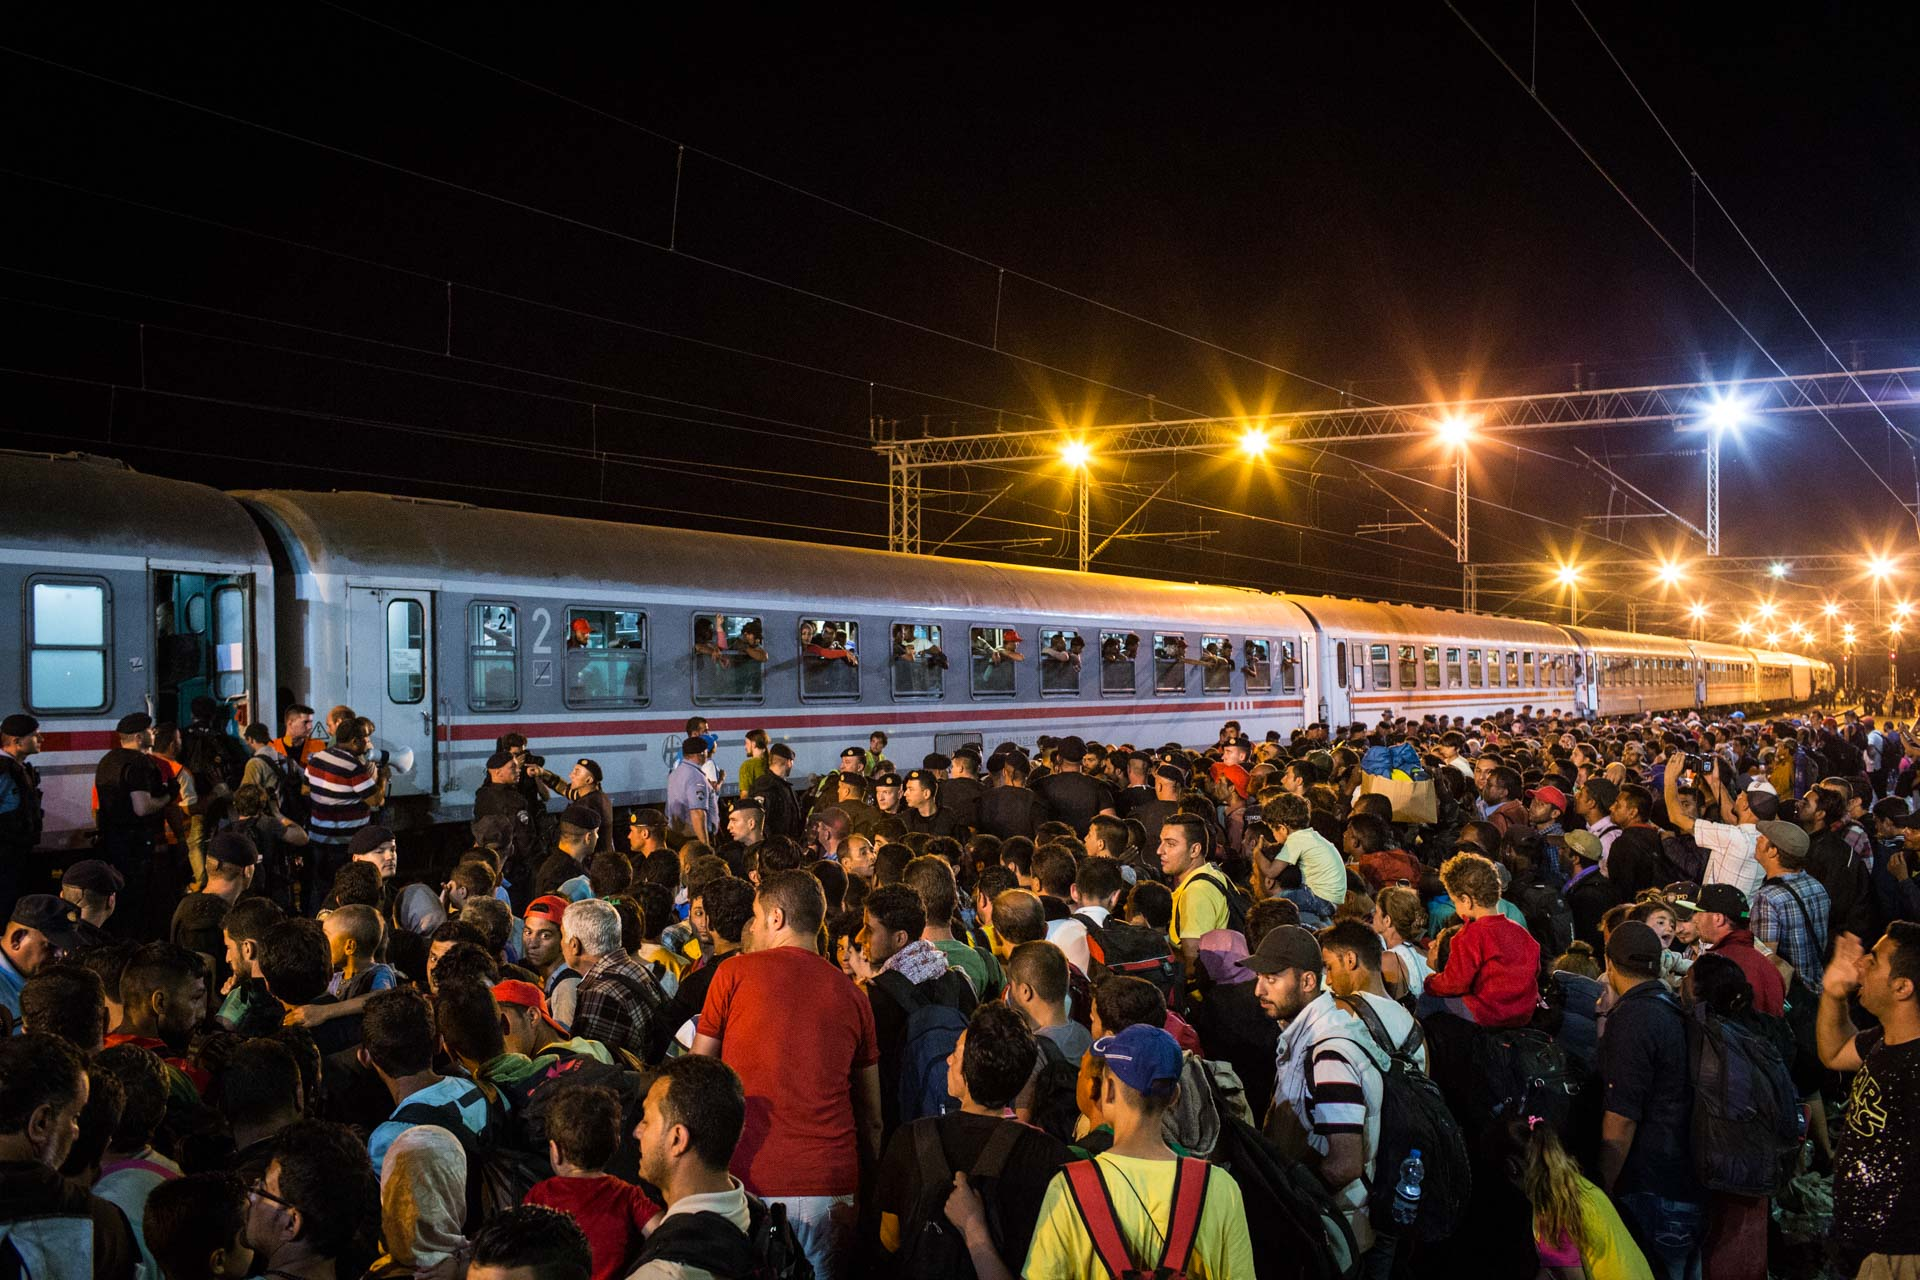 Thousands of people wait for Croatian police to put them on one of the very few trains to Slovenia.